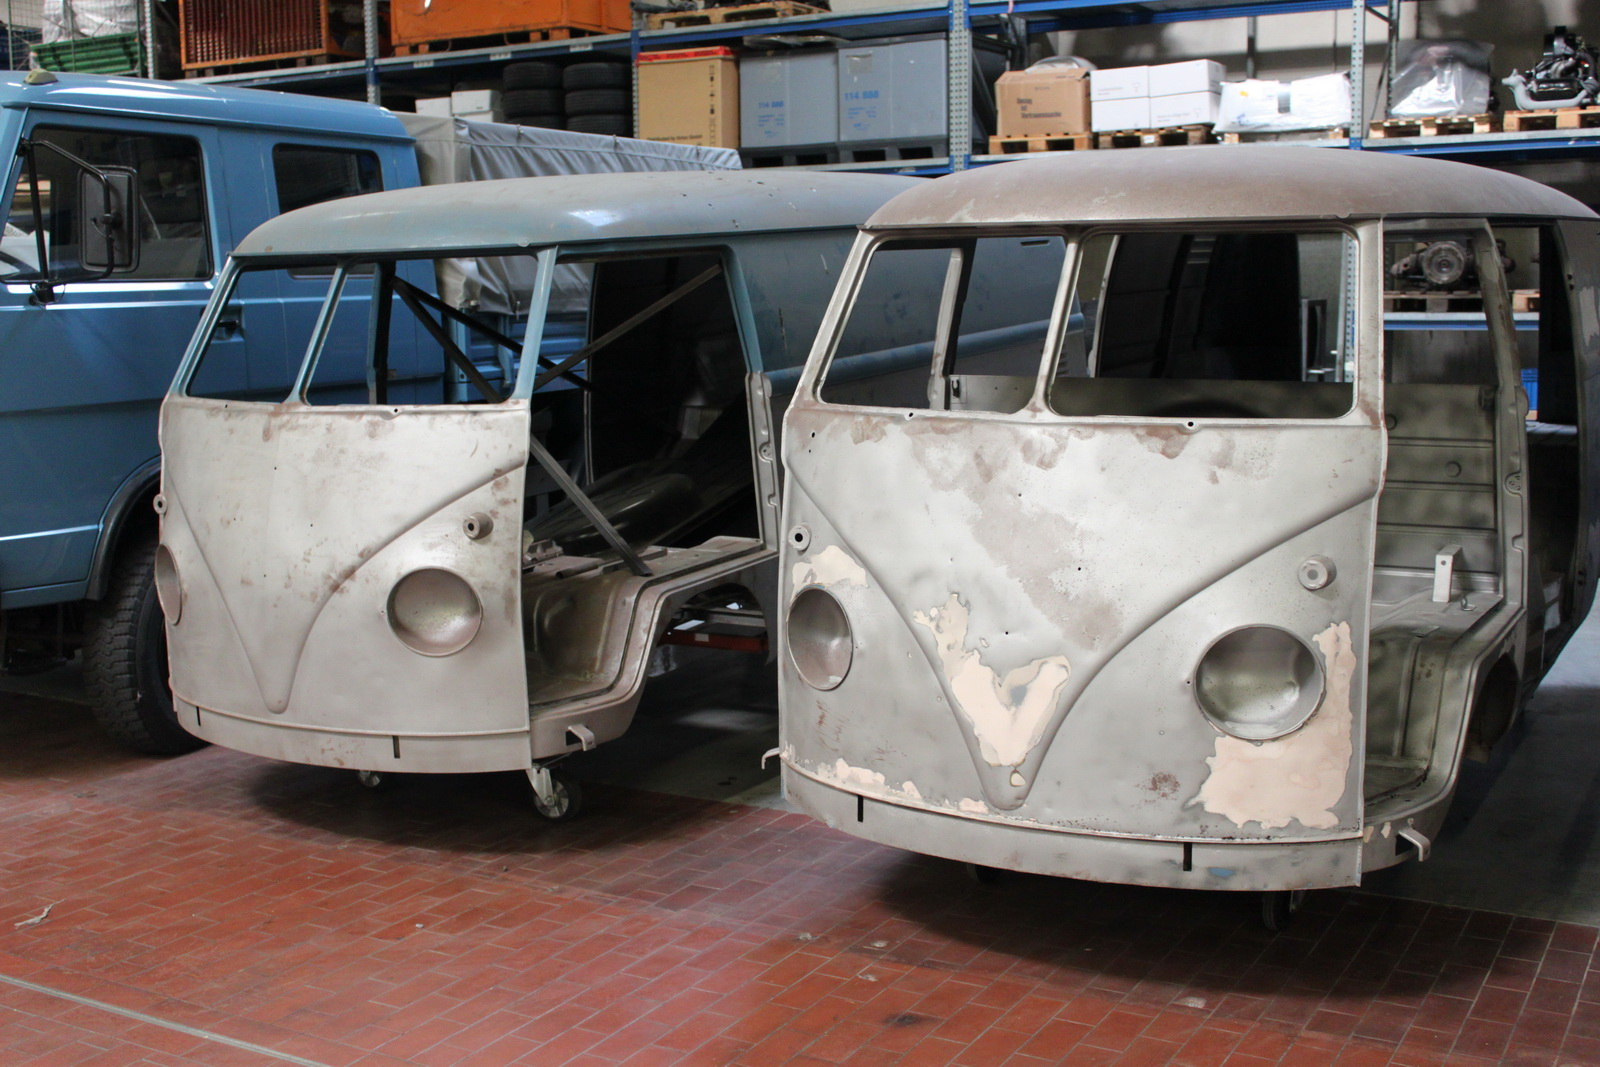 Volkswagen commercial vehicles oldtimers now also offers ex works